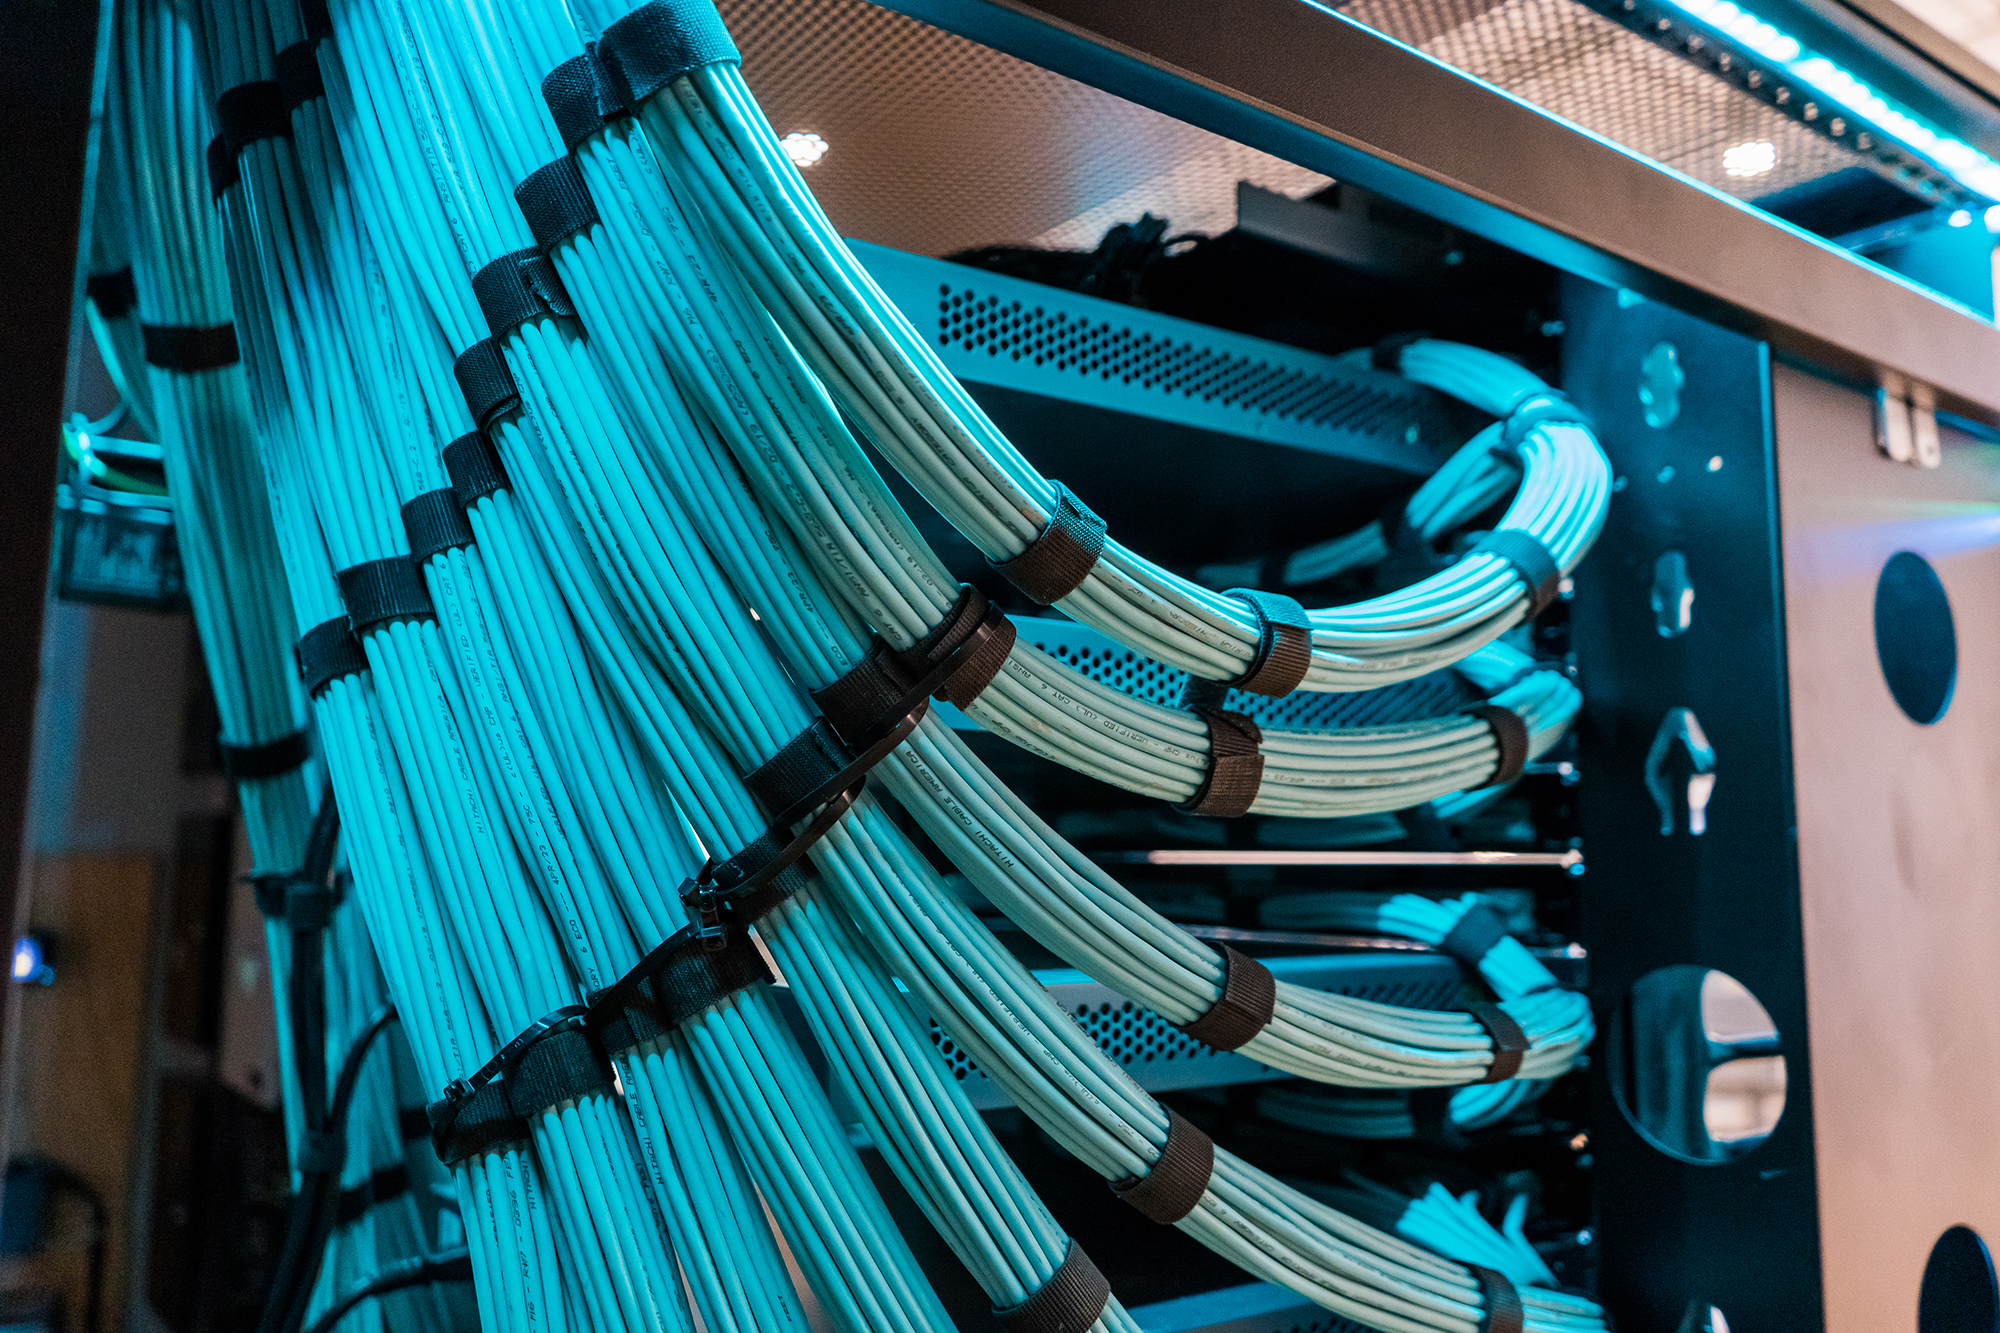 Over 10 bundles of blue cables hanging from the ceiling and wrapping into hardware